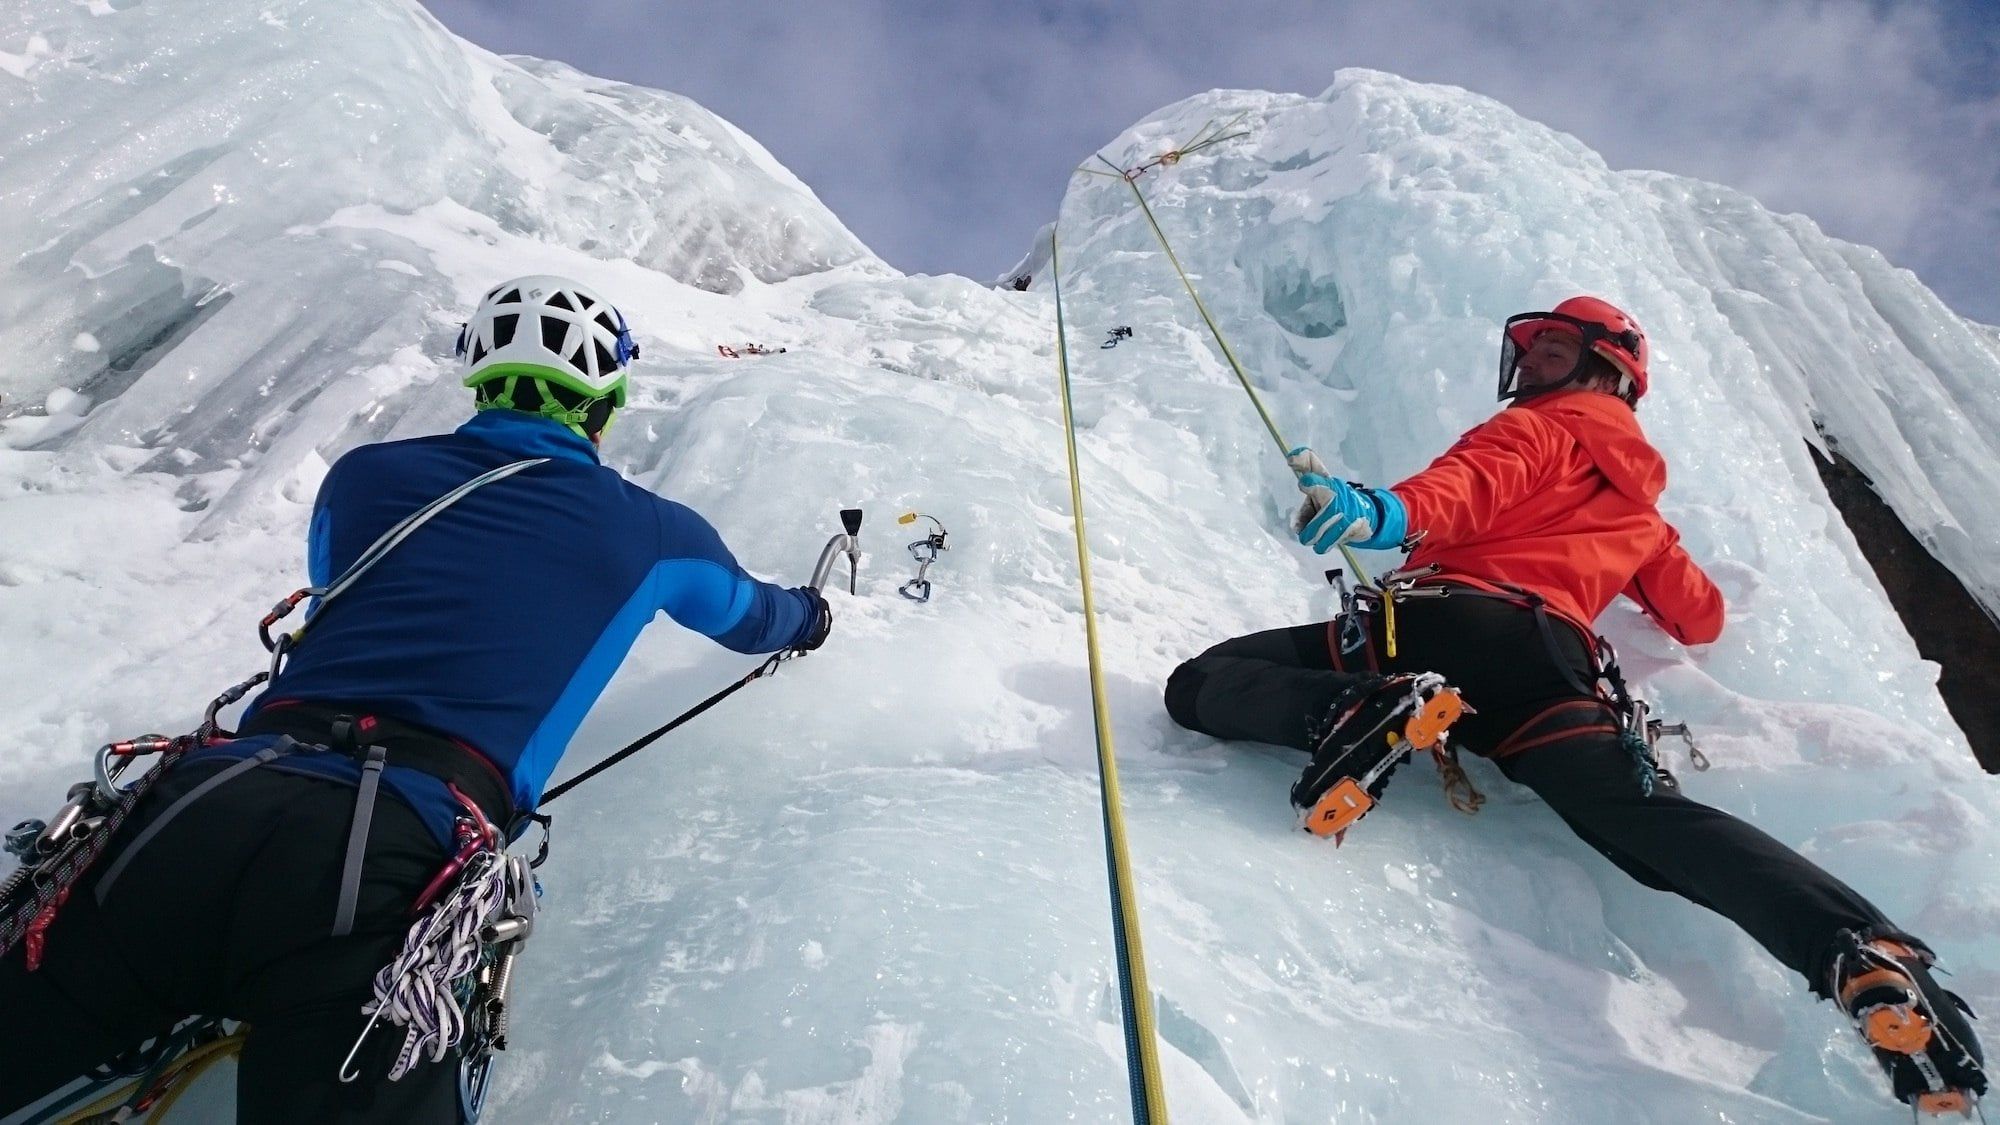 Ice Climbing // From hot springing to dog sledding to skijoring, get outside on your Montana vacation with these 8 adventurous winter activities.